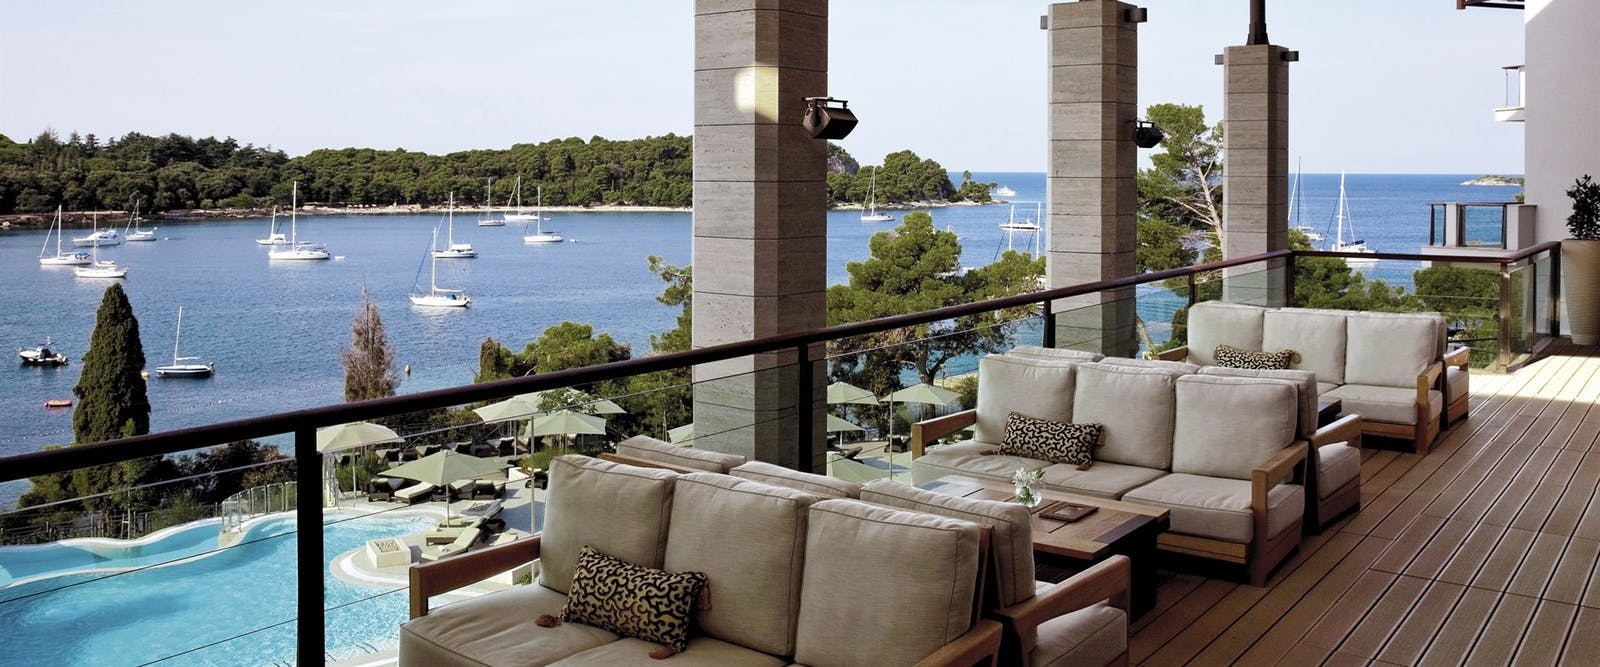 Dining with a View at Hotel Monte Mulini, Croatia